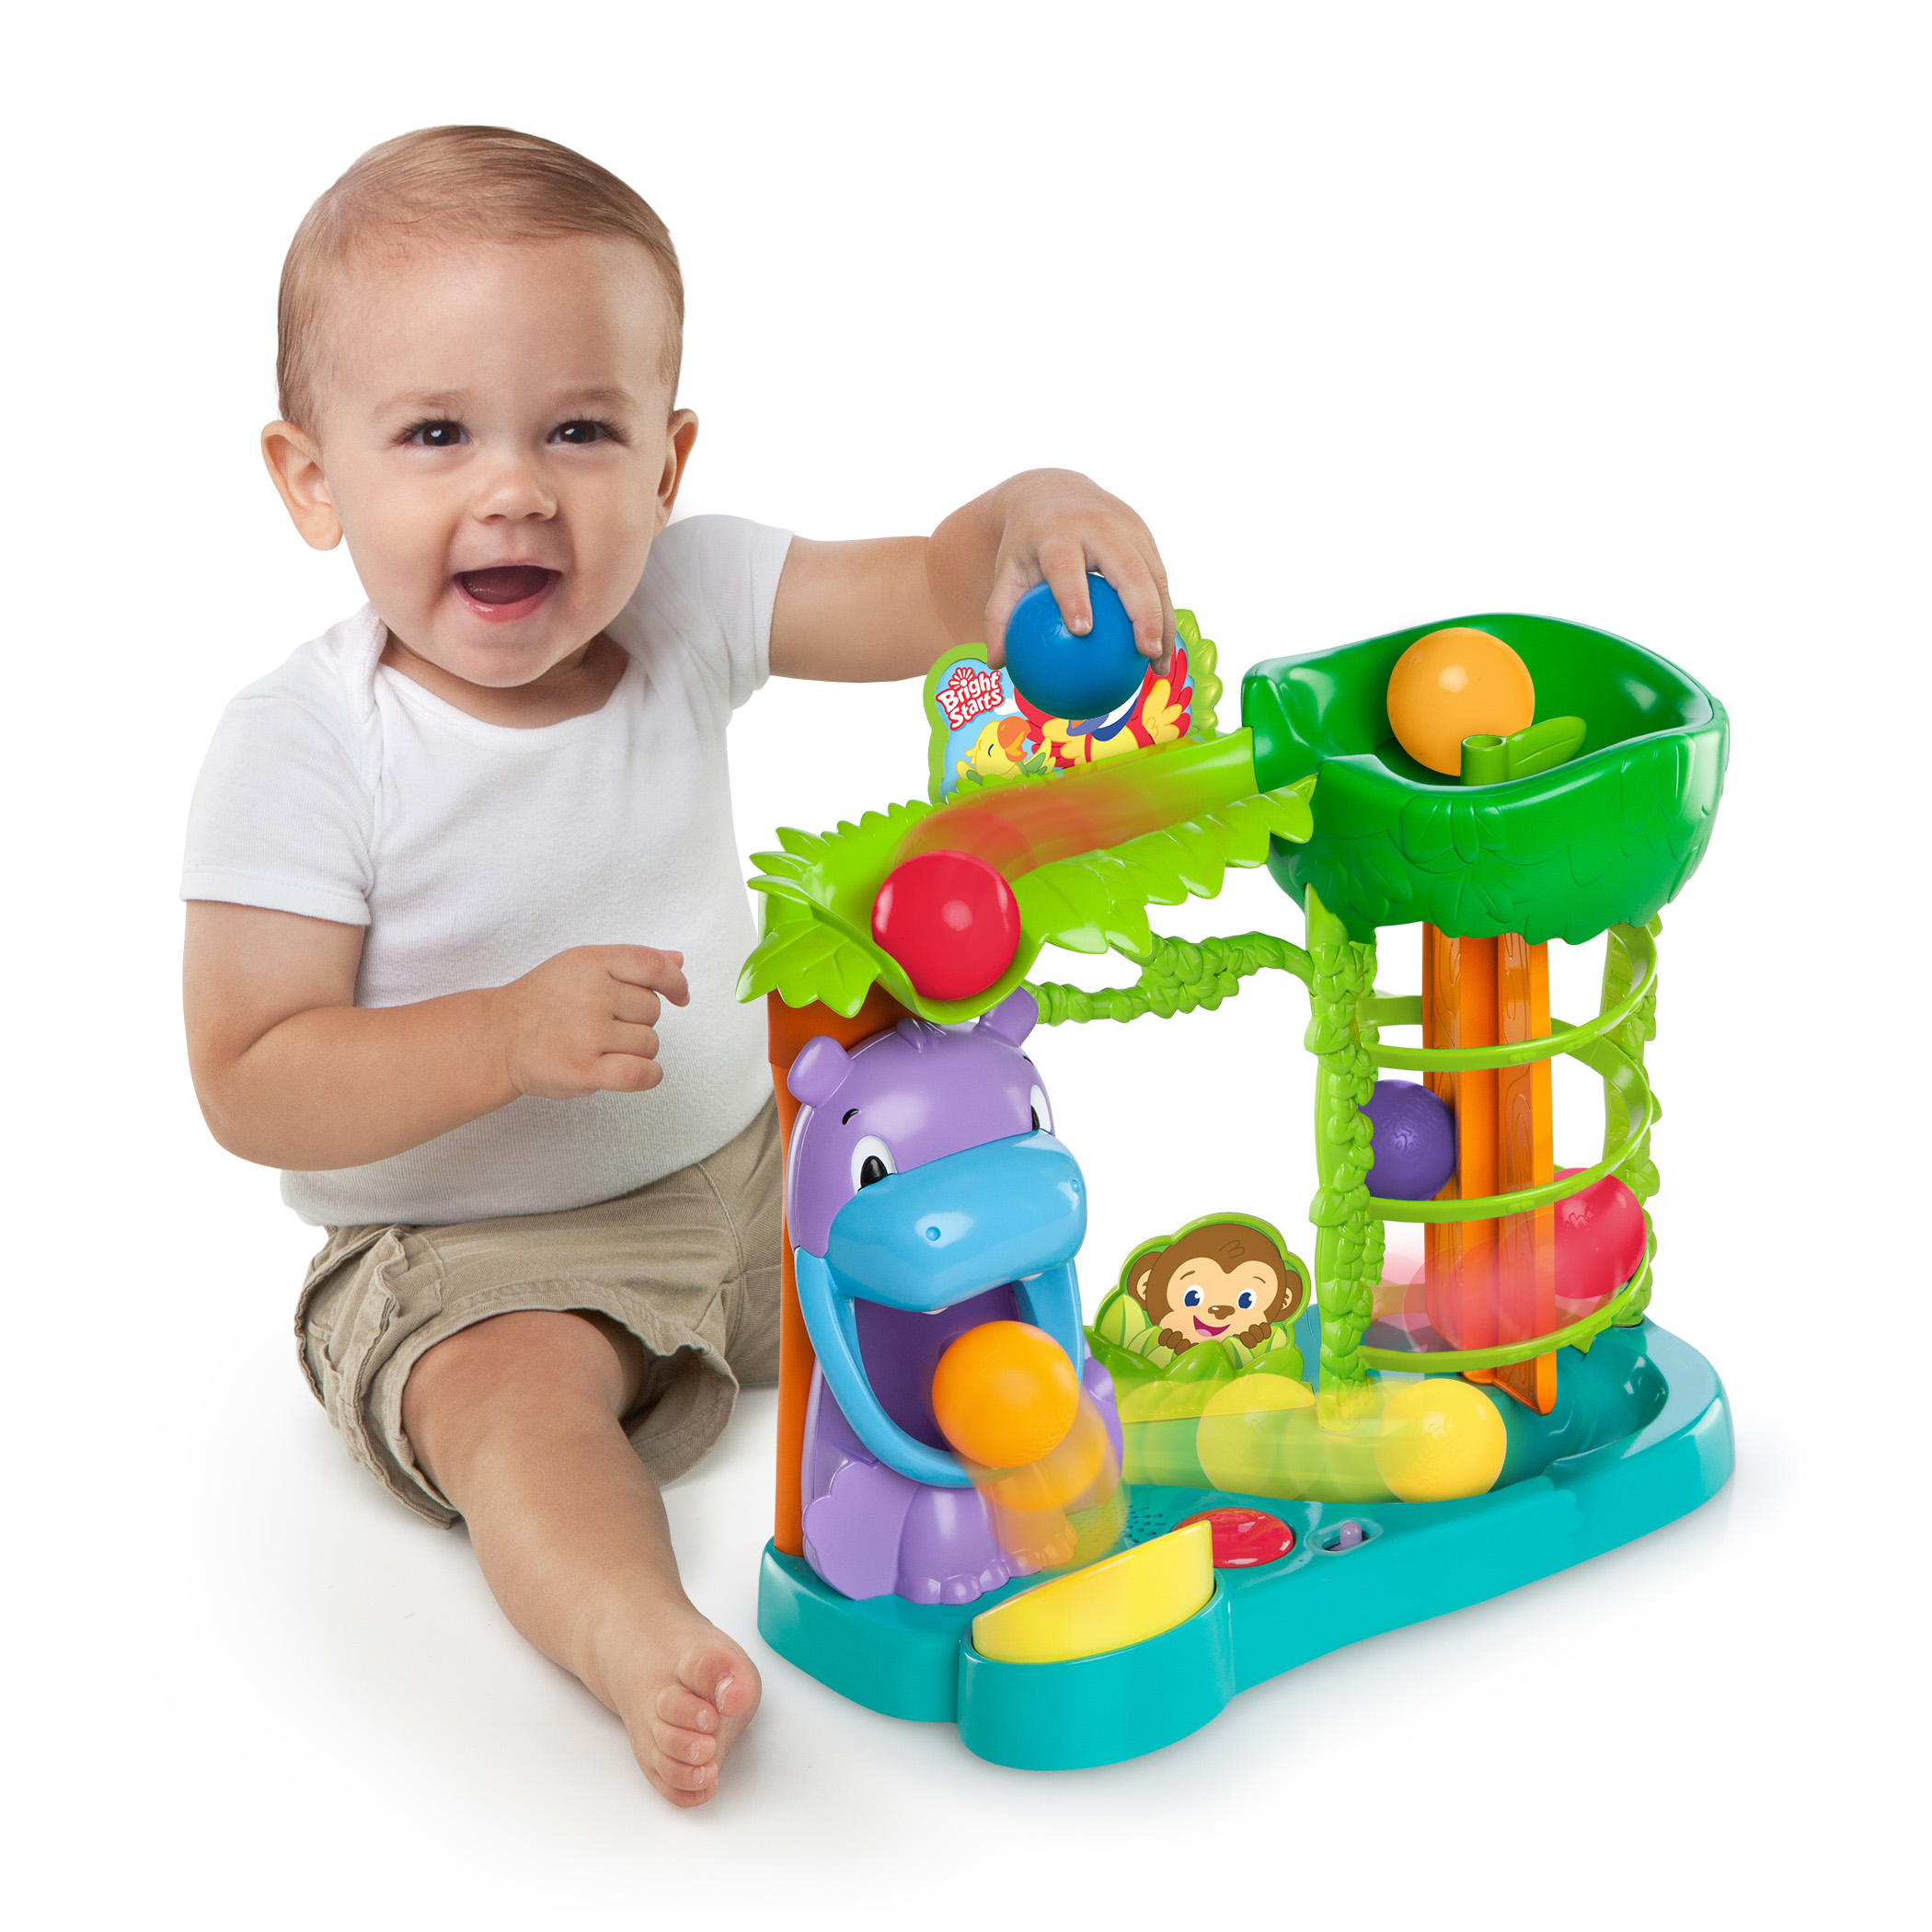 New Baby Toys : Laughter is a serious matter bright starts™ introduces